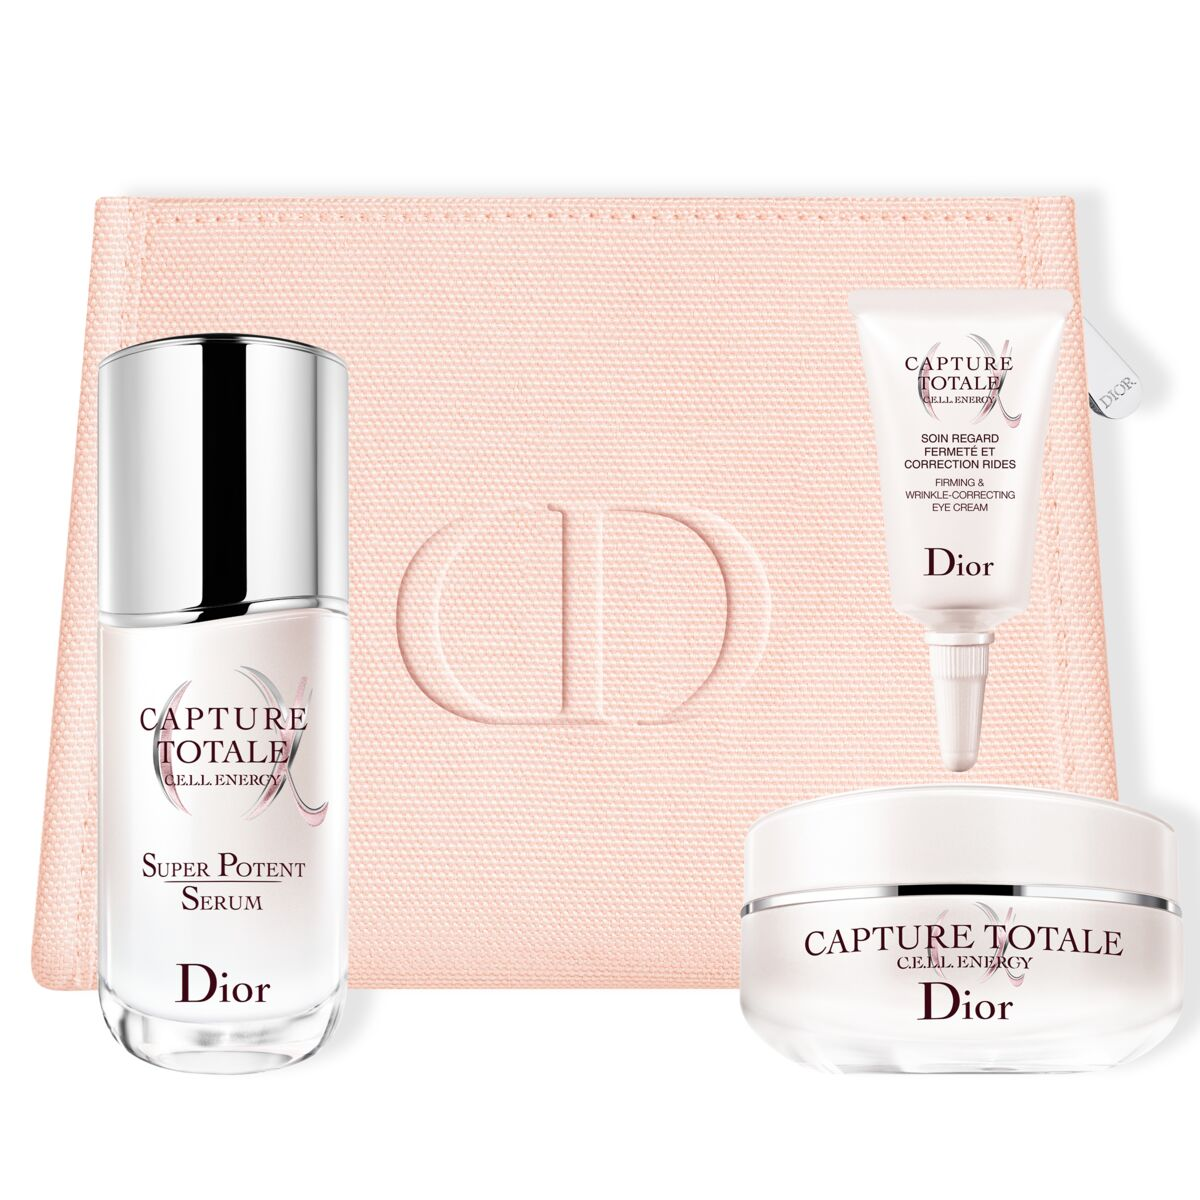 CAPTURE TOTALE ESSENTIALS OFFER INT2H21